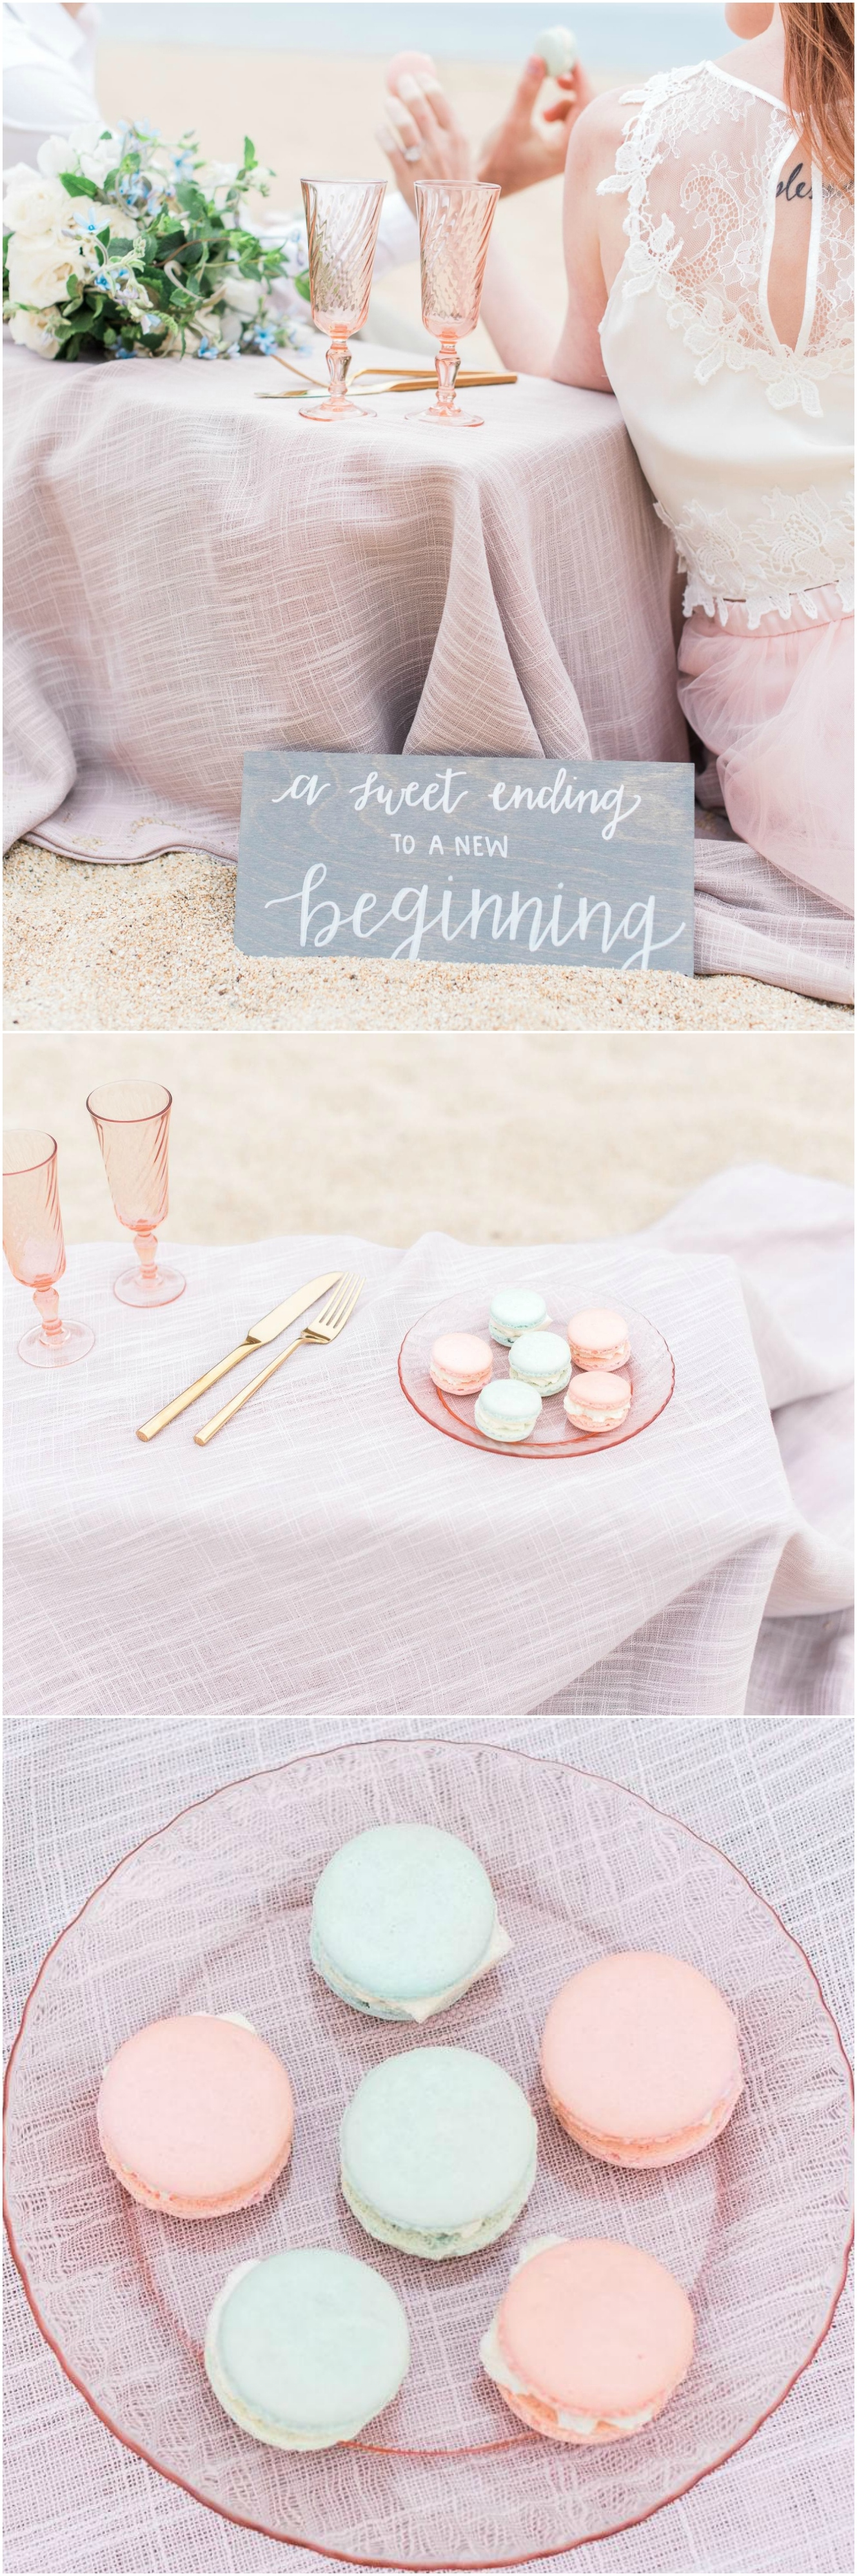 The smarter way to wed wedding ideas pinterest rose